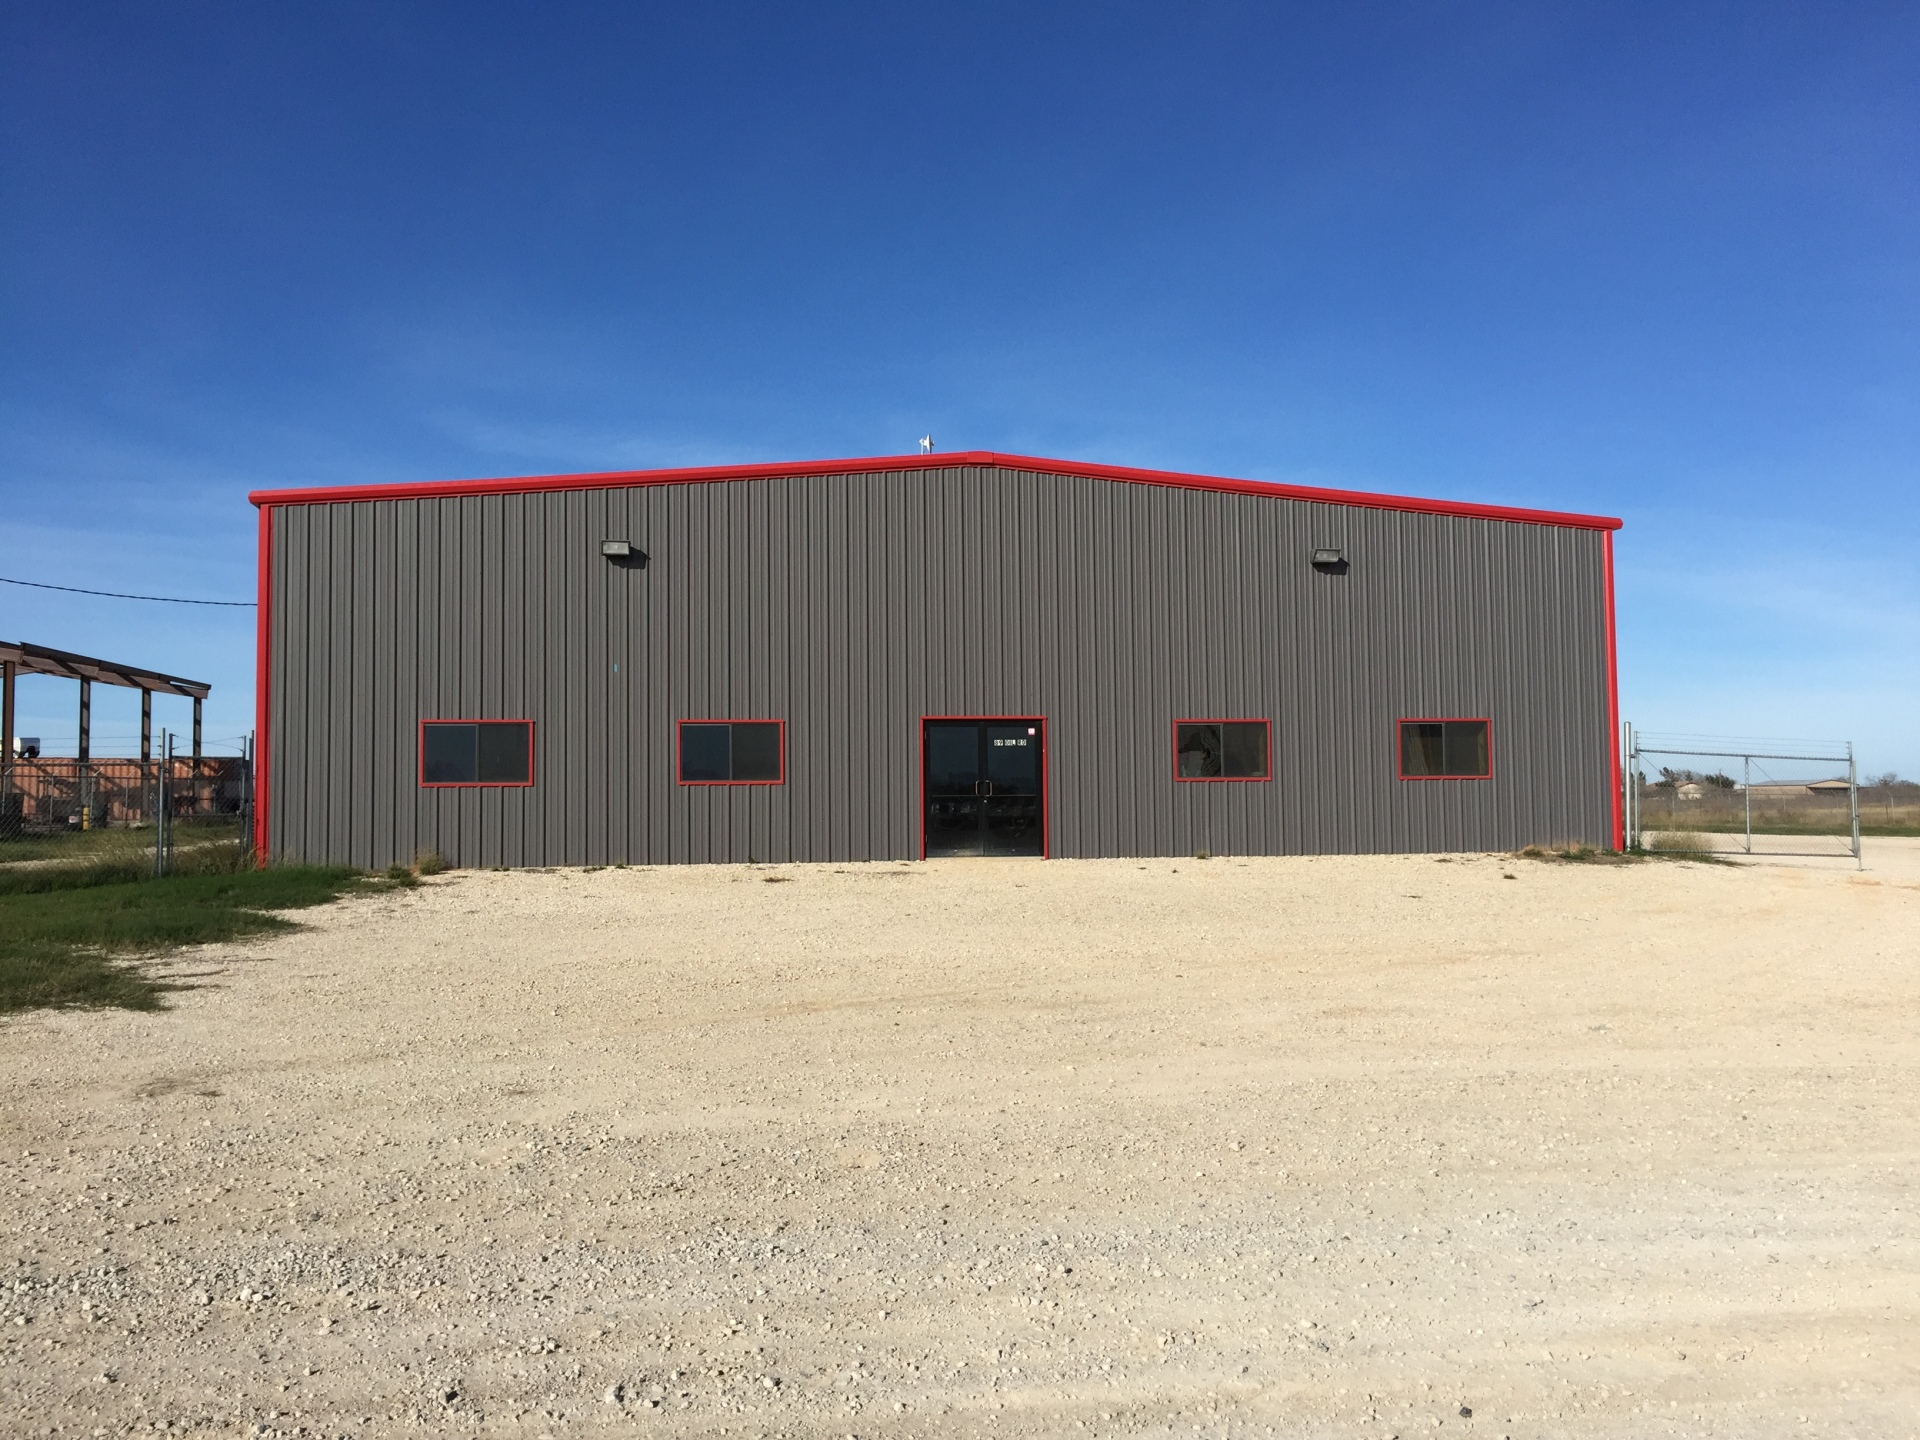 7,600 SF Warehouse on 2 acres in Oil Rd Business District - Pleasanton, TX